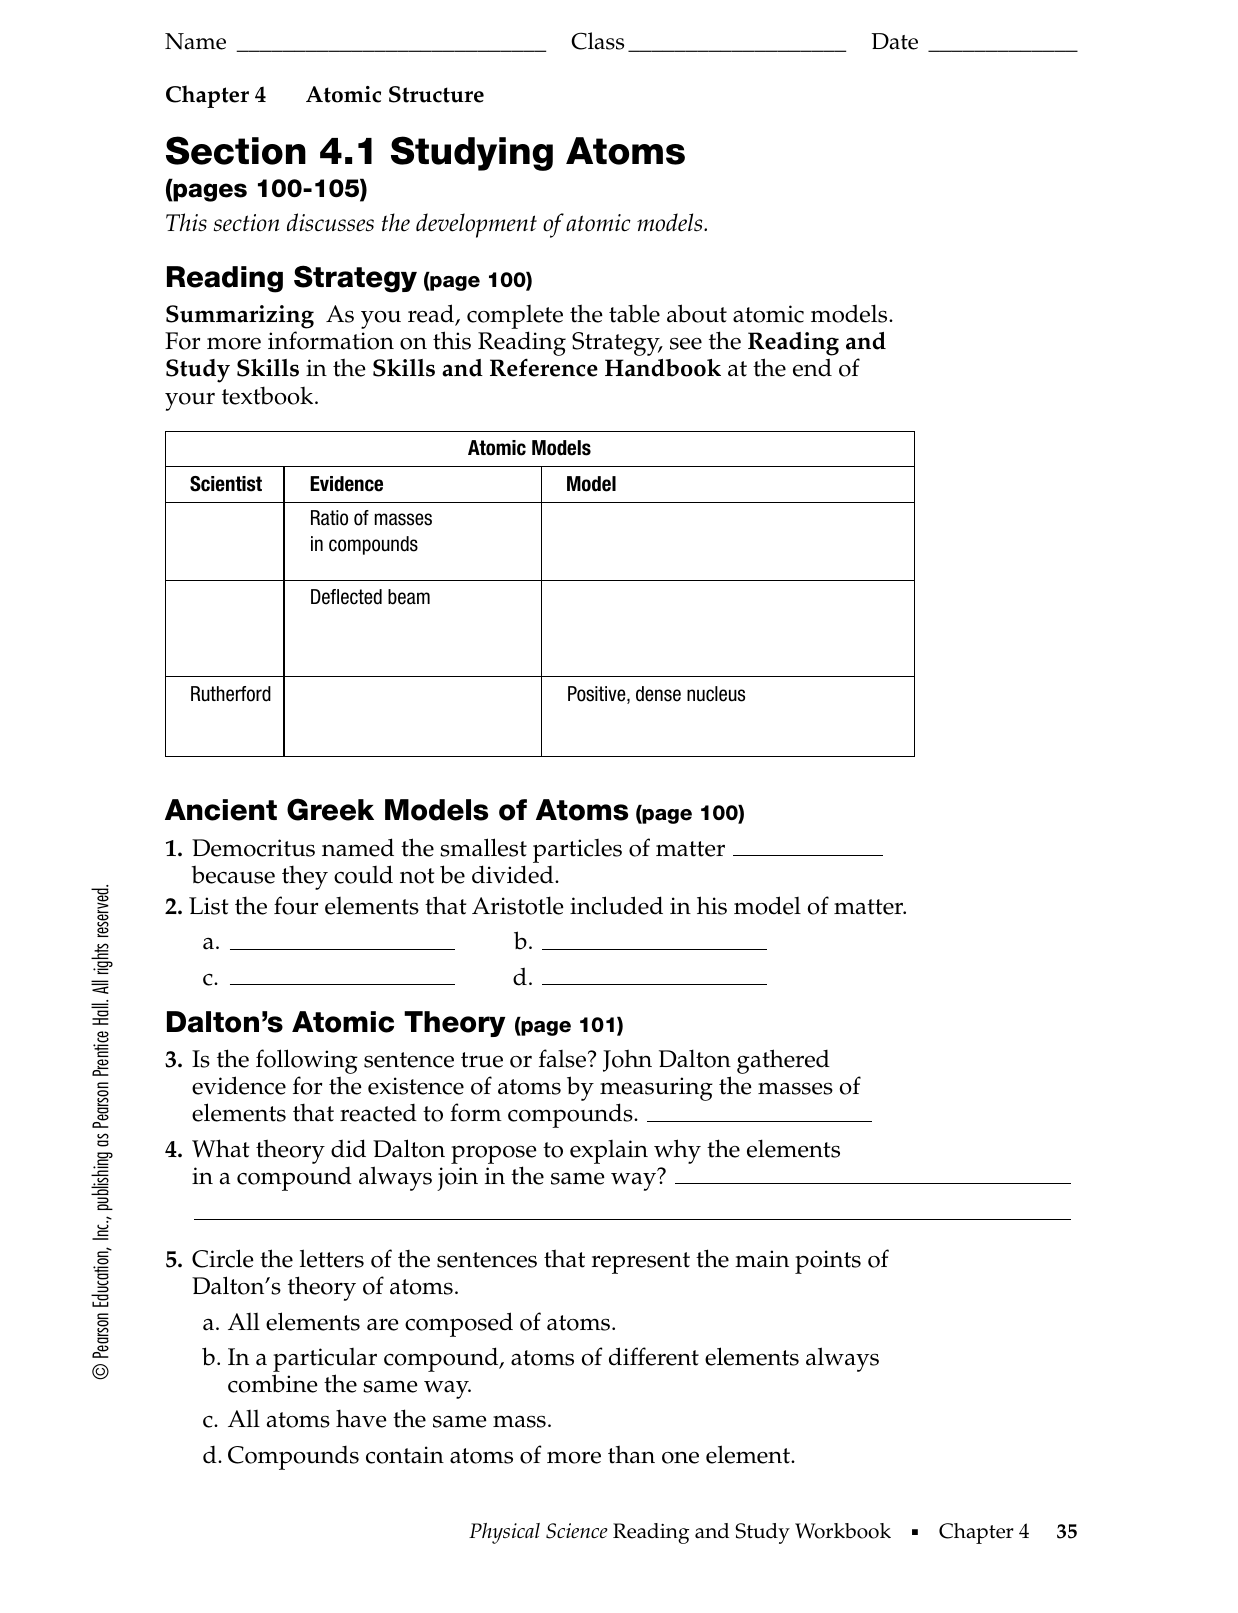 Atomic Theory Worksheet together with Rutherford Model of the Atom  Definition   Diagram   Video   Lesson further Introduction to Atoms Key Concepts Section 1 Summary moreover drawing conclusions from data worksheets – letseatapp co likewise Democritus  The Atom  around 400 BCE    ppt video online download together with Worksheet Development Of Atomic Theory True Or False Answers furthermore Development Of Atomic Theory Worksheets also  additionally Section 4 1 Studying Atoms besides Atomic Structure   The Changing Models of Atom furthermore Day 1 Day 2 in addition History of the Atom  Atomic Theory    YouTube moreover ANSWER KEY   BUILD AN ATOM PART I  ATOM SCREEN Build an Atom additionally Atomic structure teaching resources – the science teacher besides Atomic Structure Worksheet   Ivoiregion besides Periodic Table Yaad Karne Ka Fresh 15 Best Development. on development of atomic theory worksheet